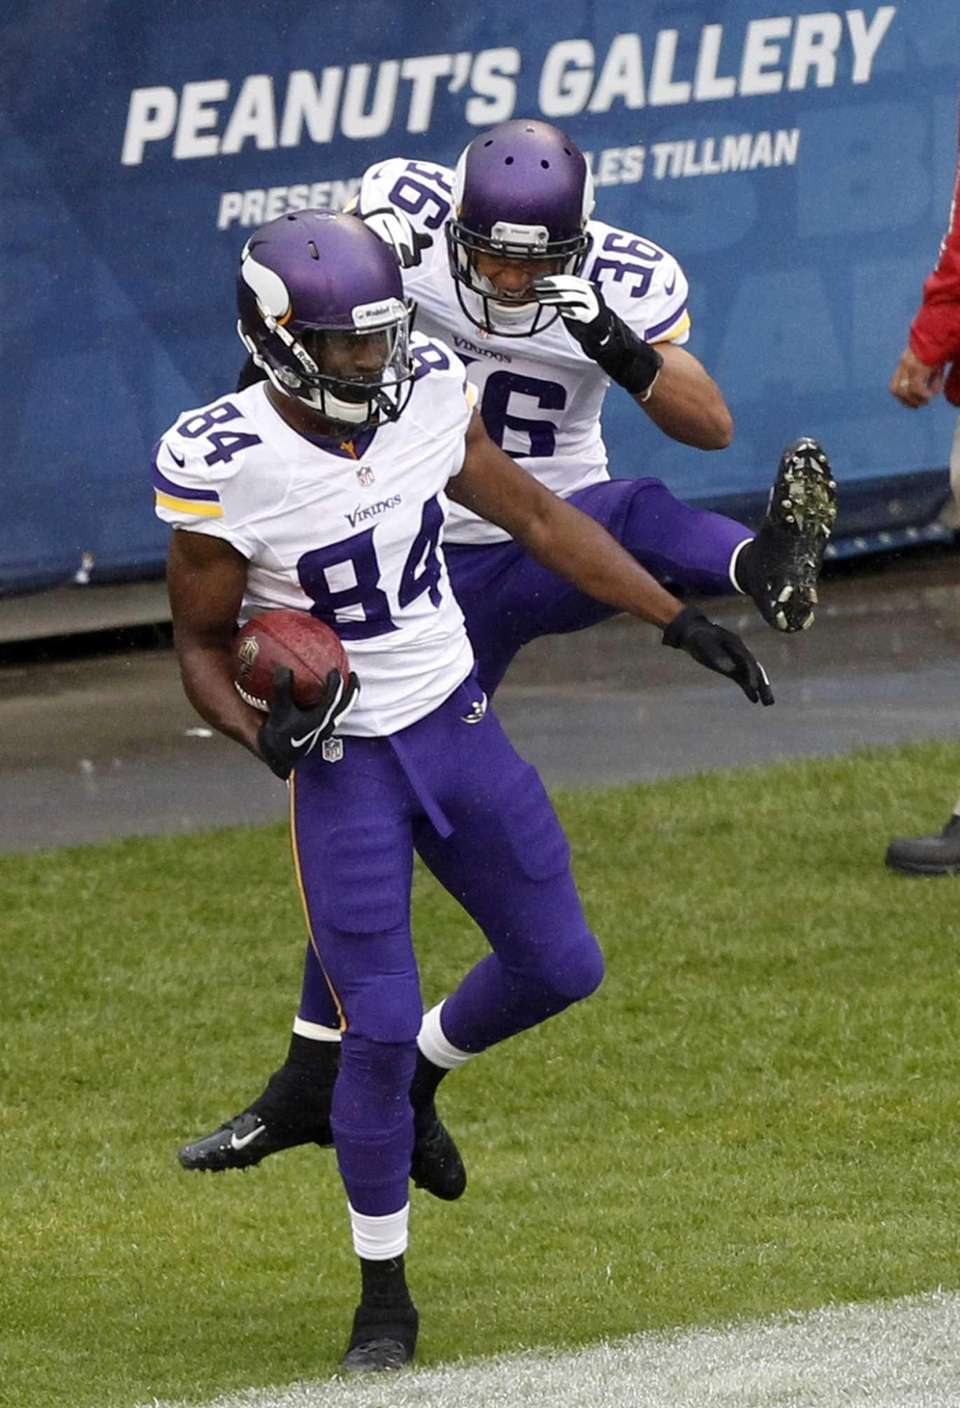 Minnesota Vikings wide receiver Cordarrelle Patterson (84) celebrates